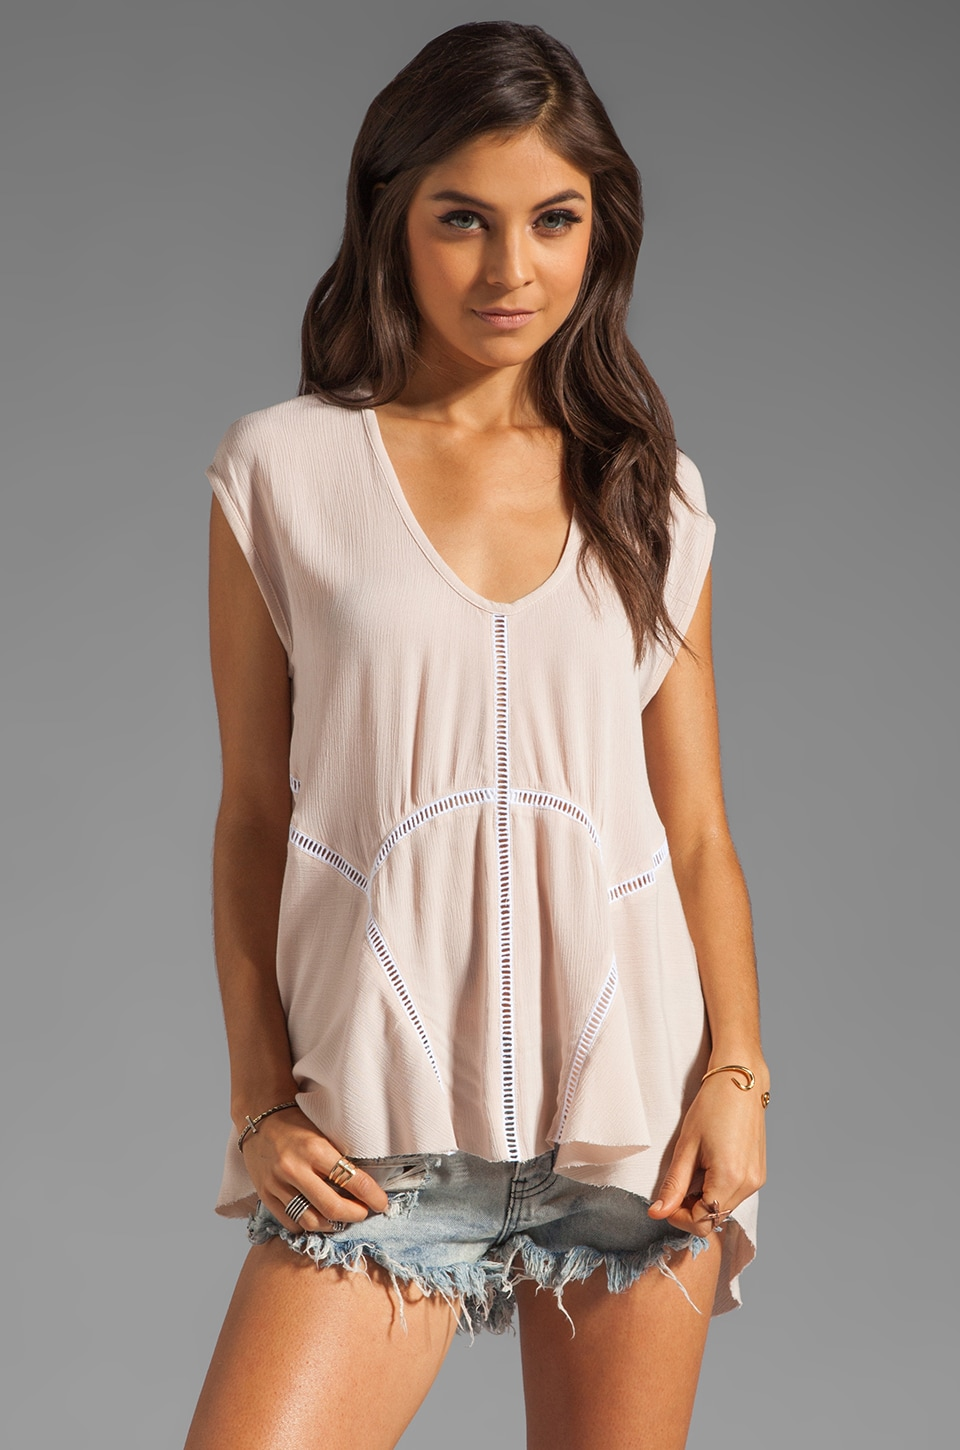 One Teaspoon Dirty Cash Cut Out Top in Dusty Pink